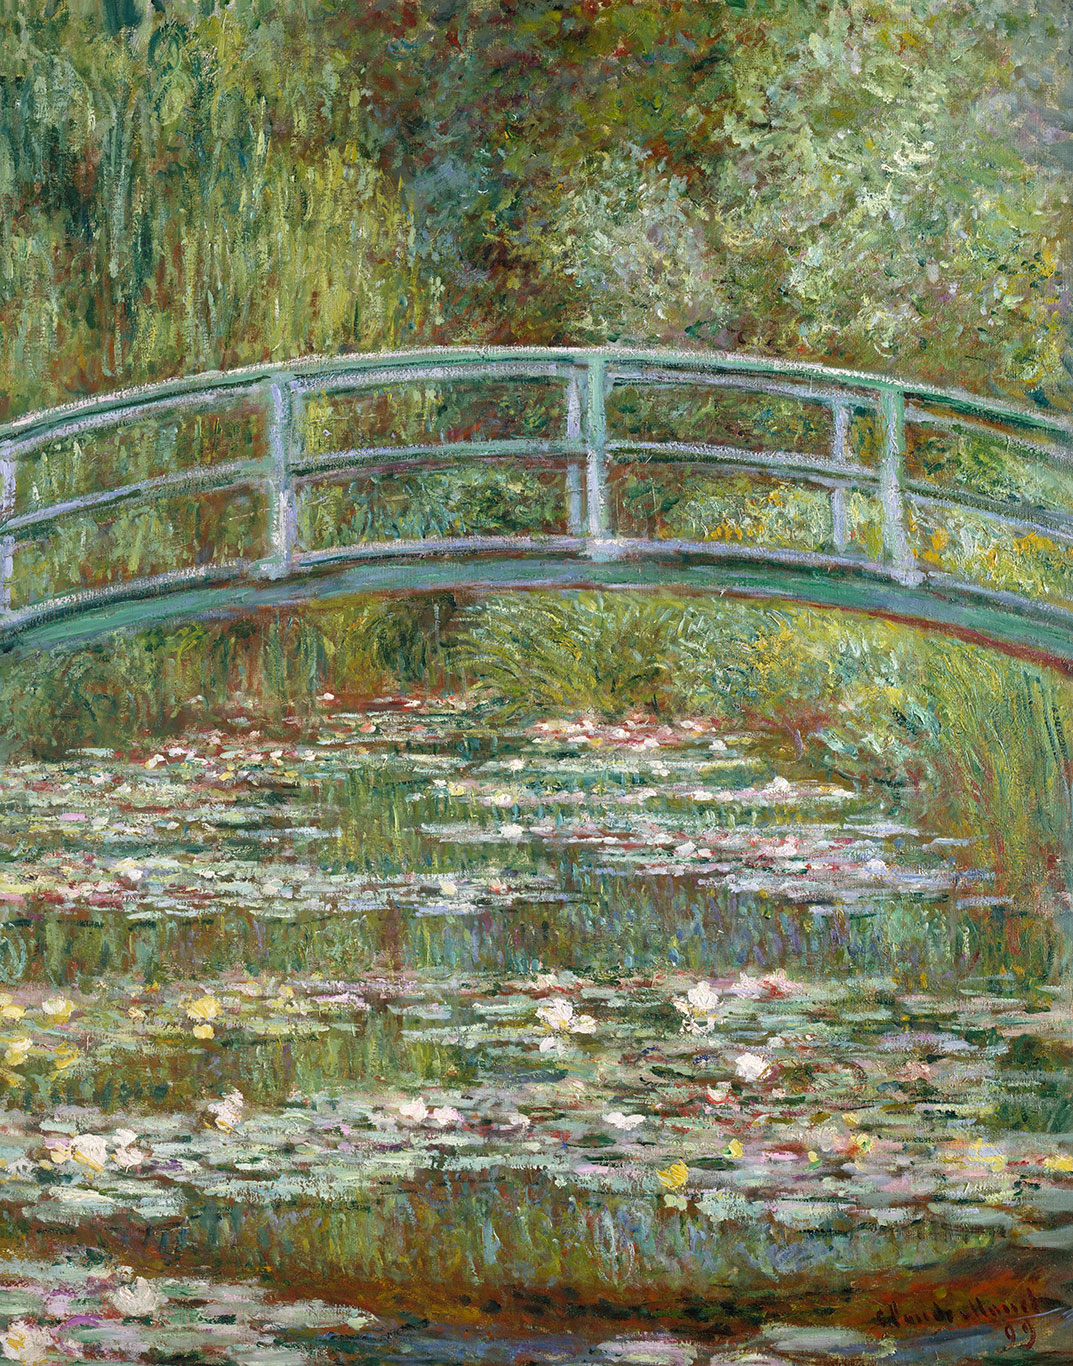 Claude Monet, Bridge over a Pond of Water Lilies